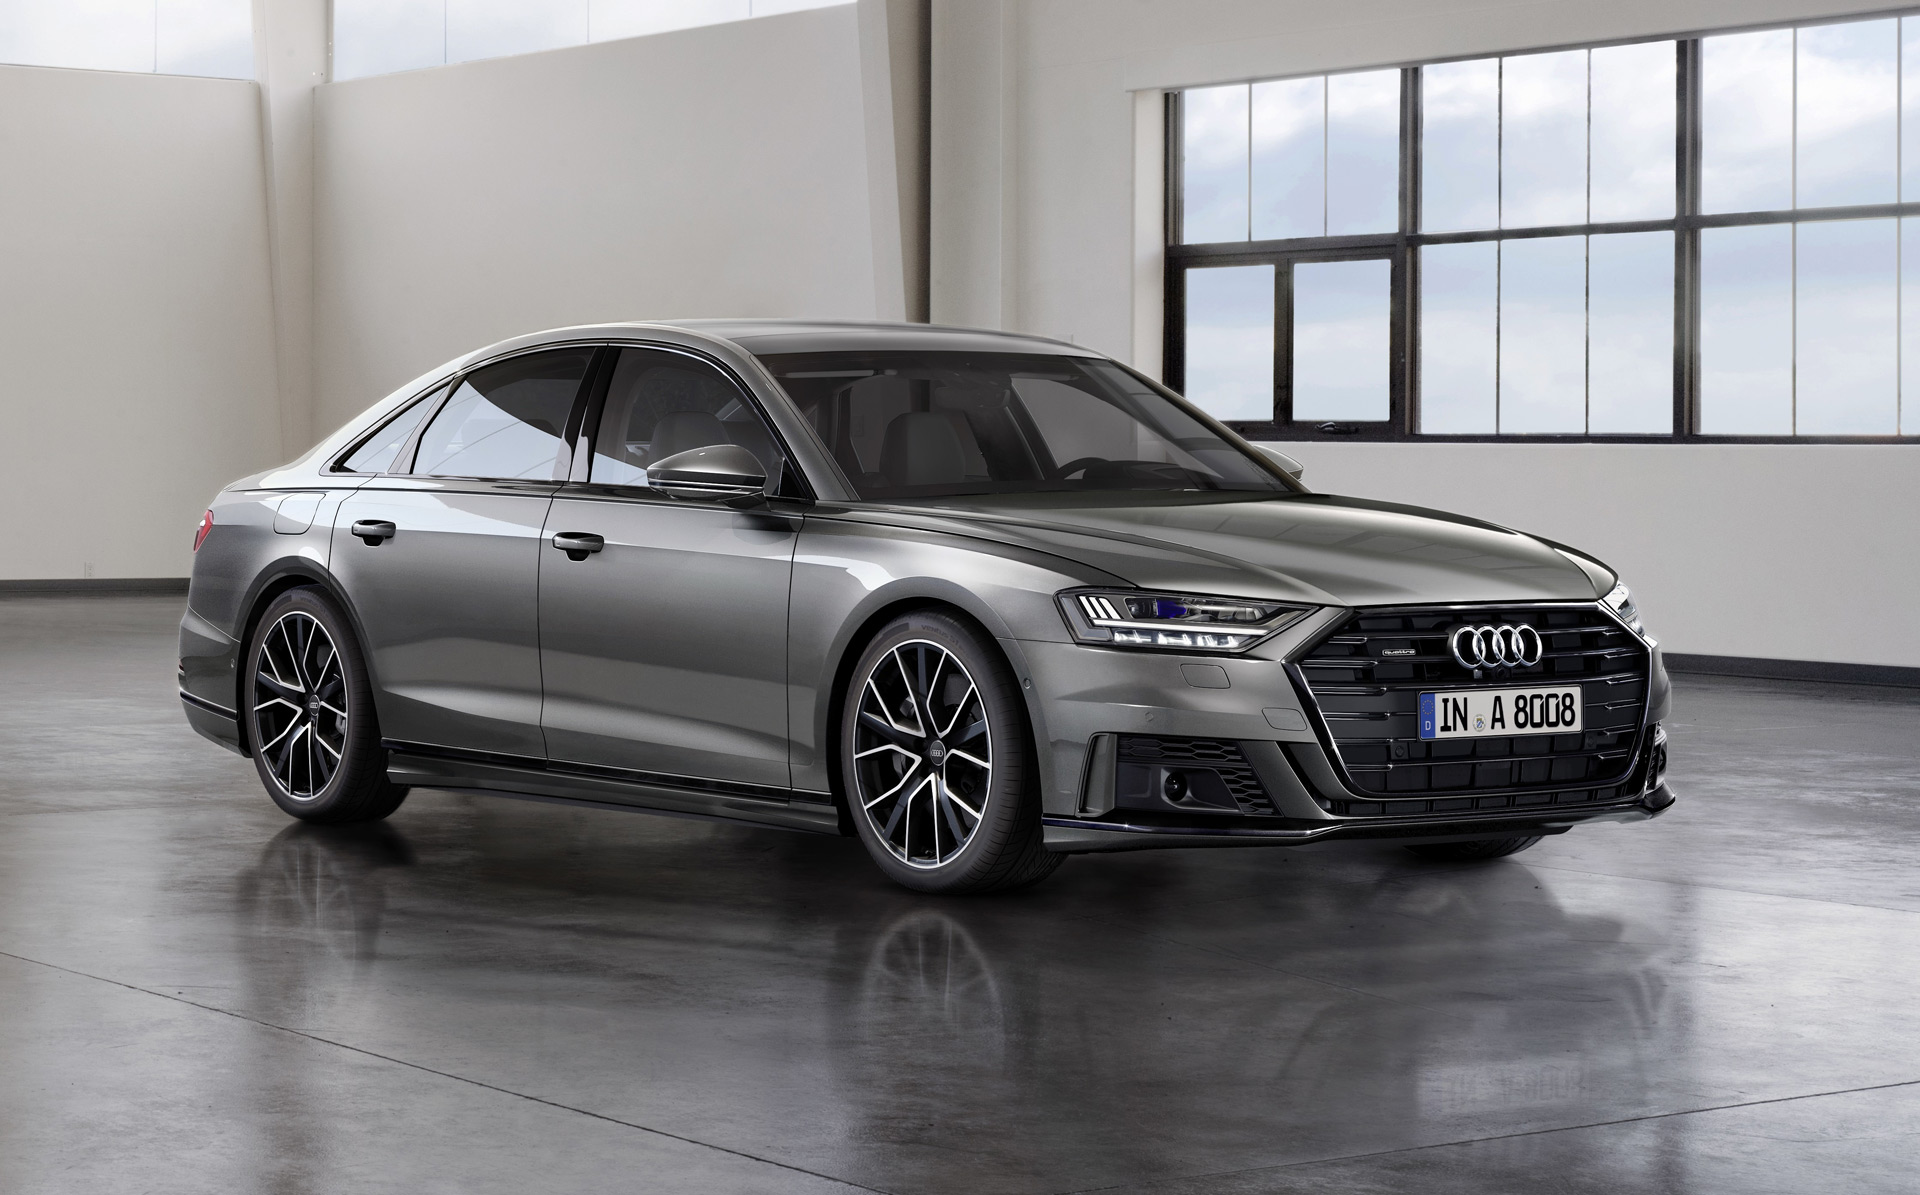 New And Used Audi A8 Prices Photos Reviews Specs The Car Connection